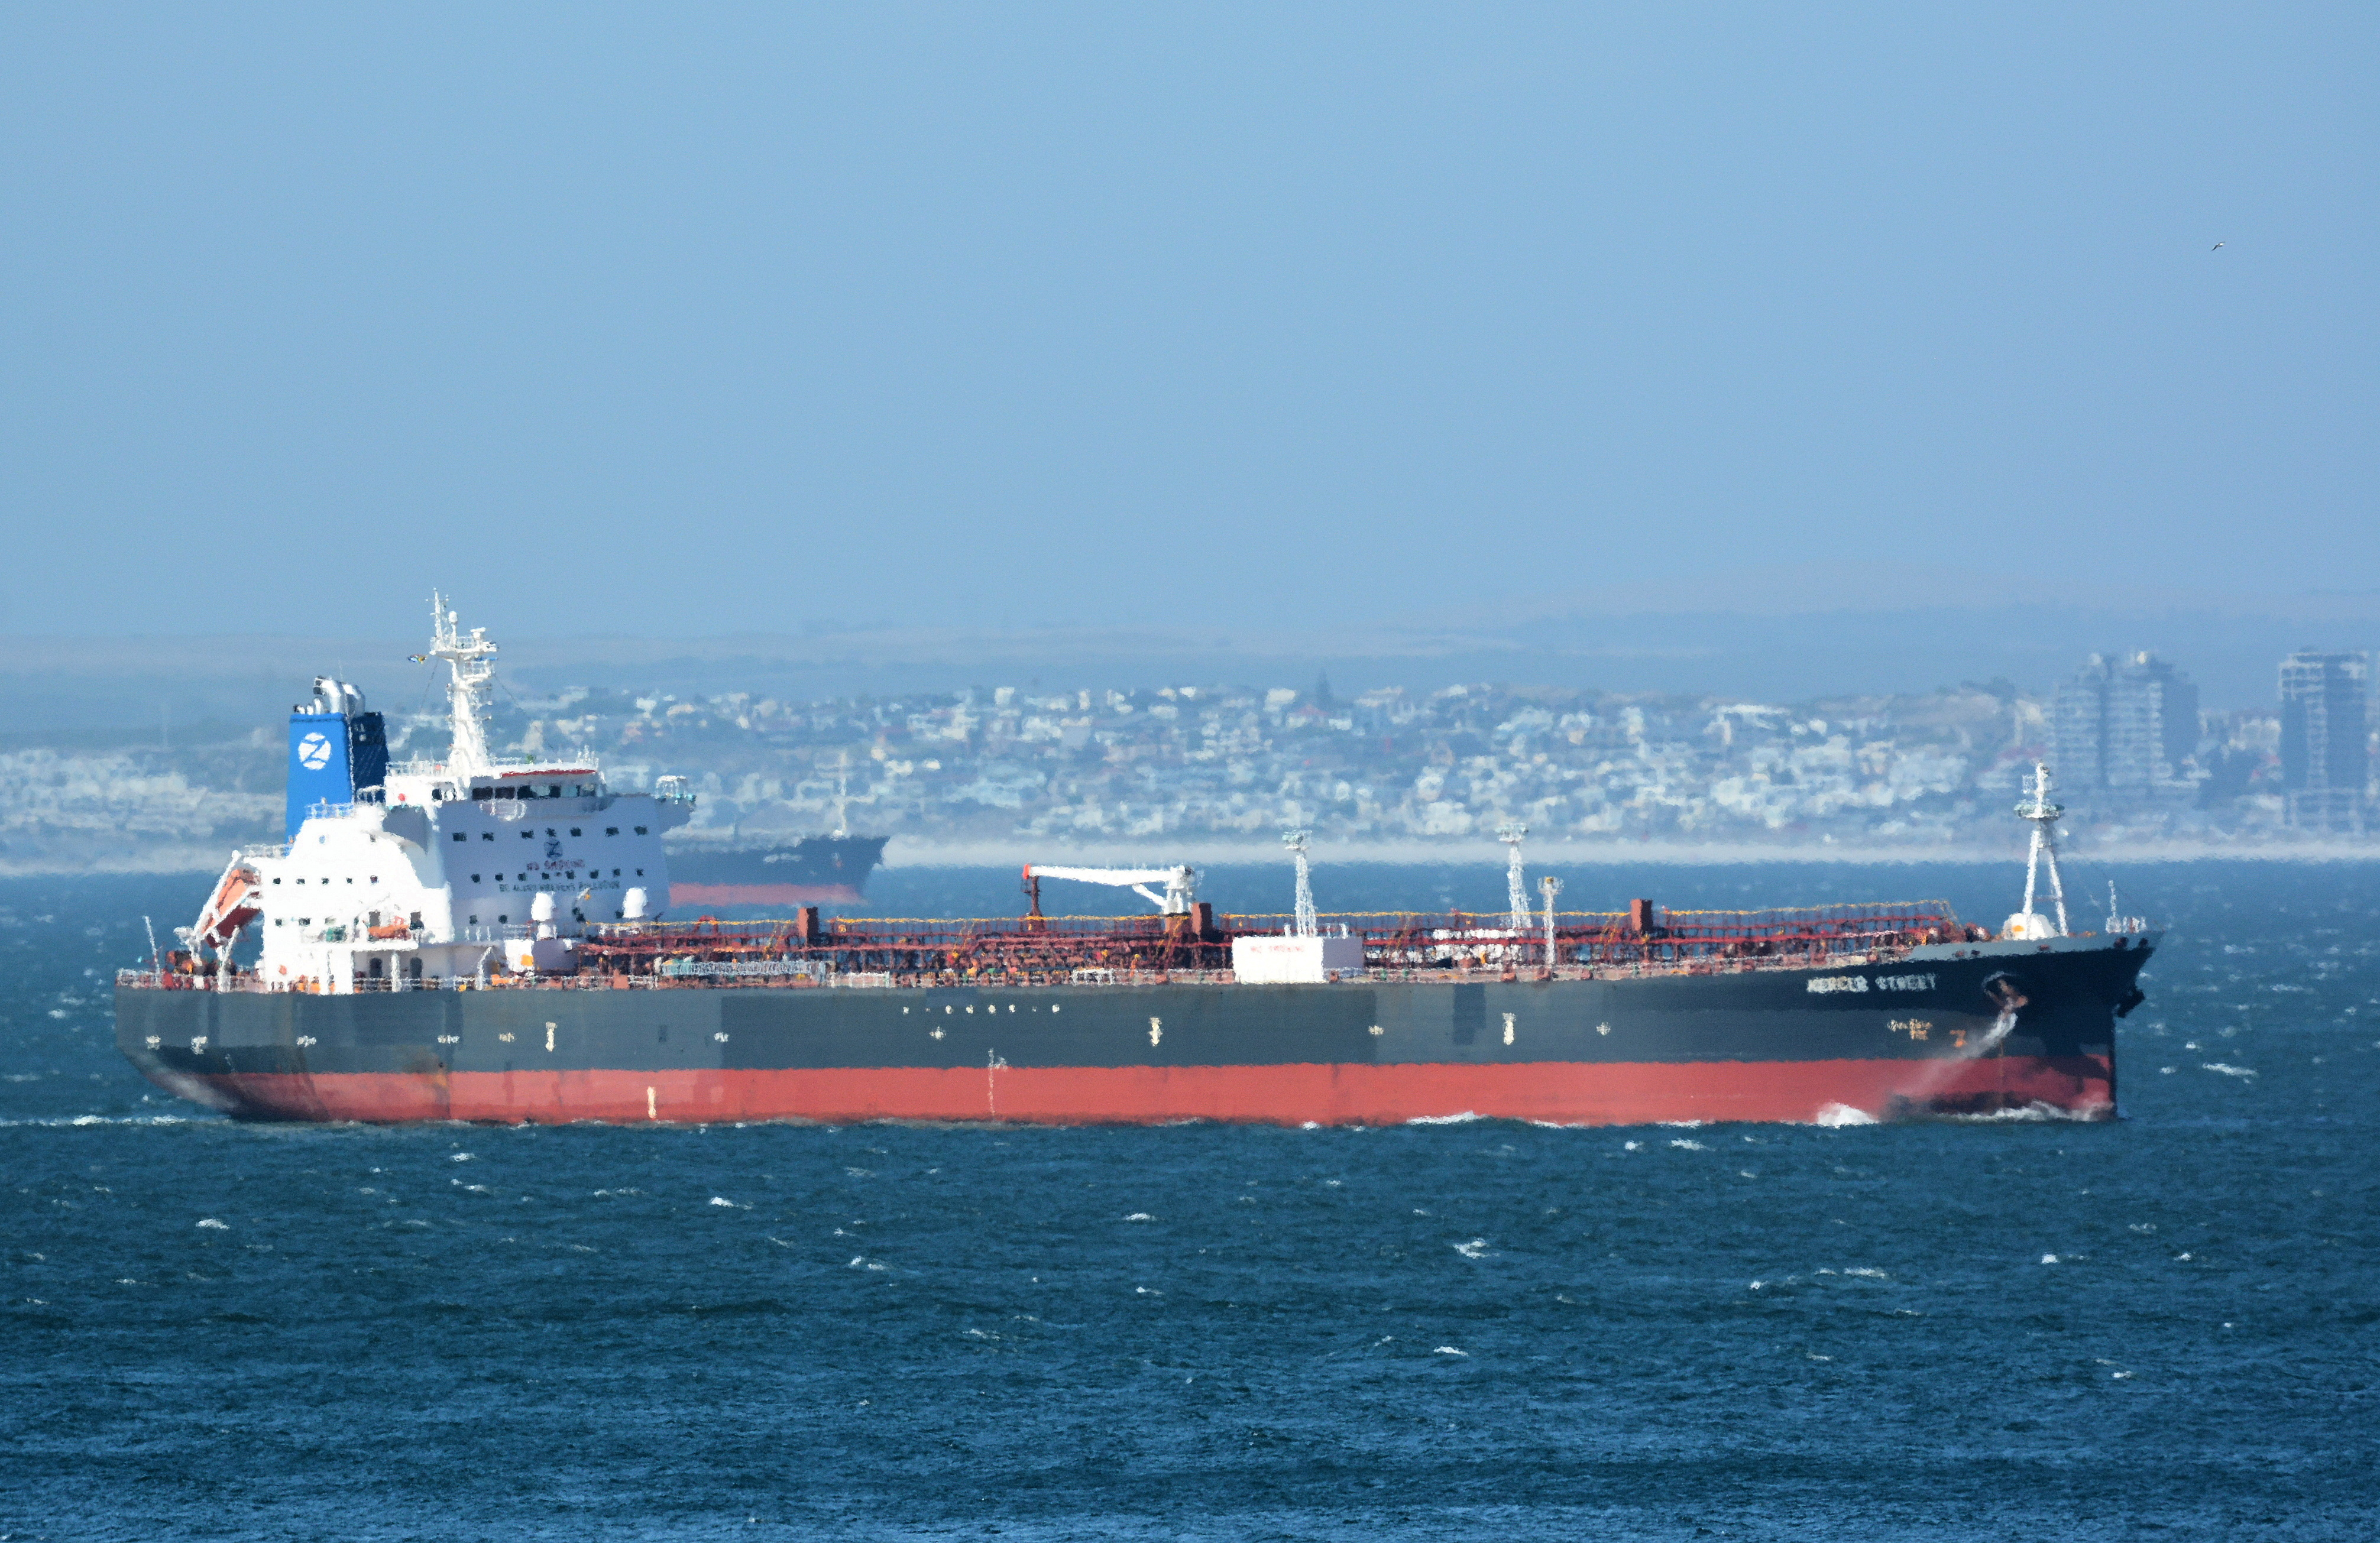 The Mercer Street, a Japanese-owned Liberian-flagged tanker managed by Israeli-owned Zodiac Maritime that was attacked off Oman coast as seen in Cape Town, South Africa, December 31, 2015 in this picture obtained from ship tracker website, MarineTraffic.com. Johan Victor/Handout via REUTERS